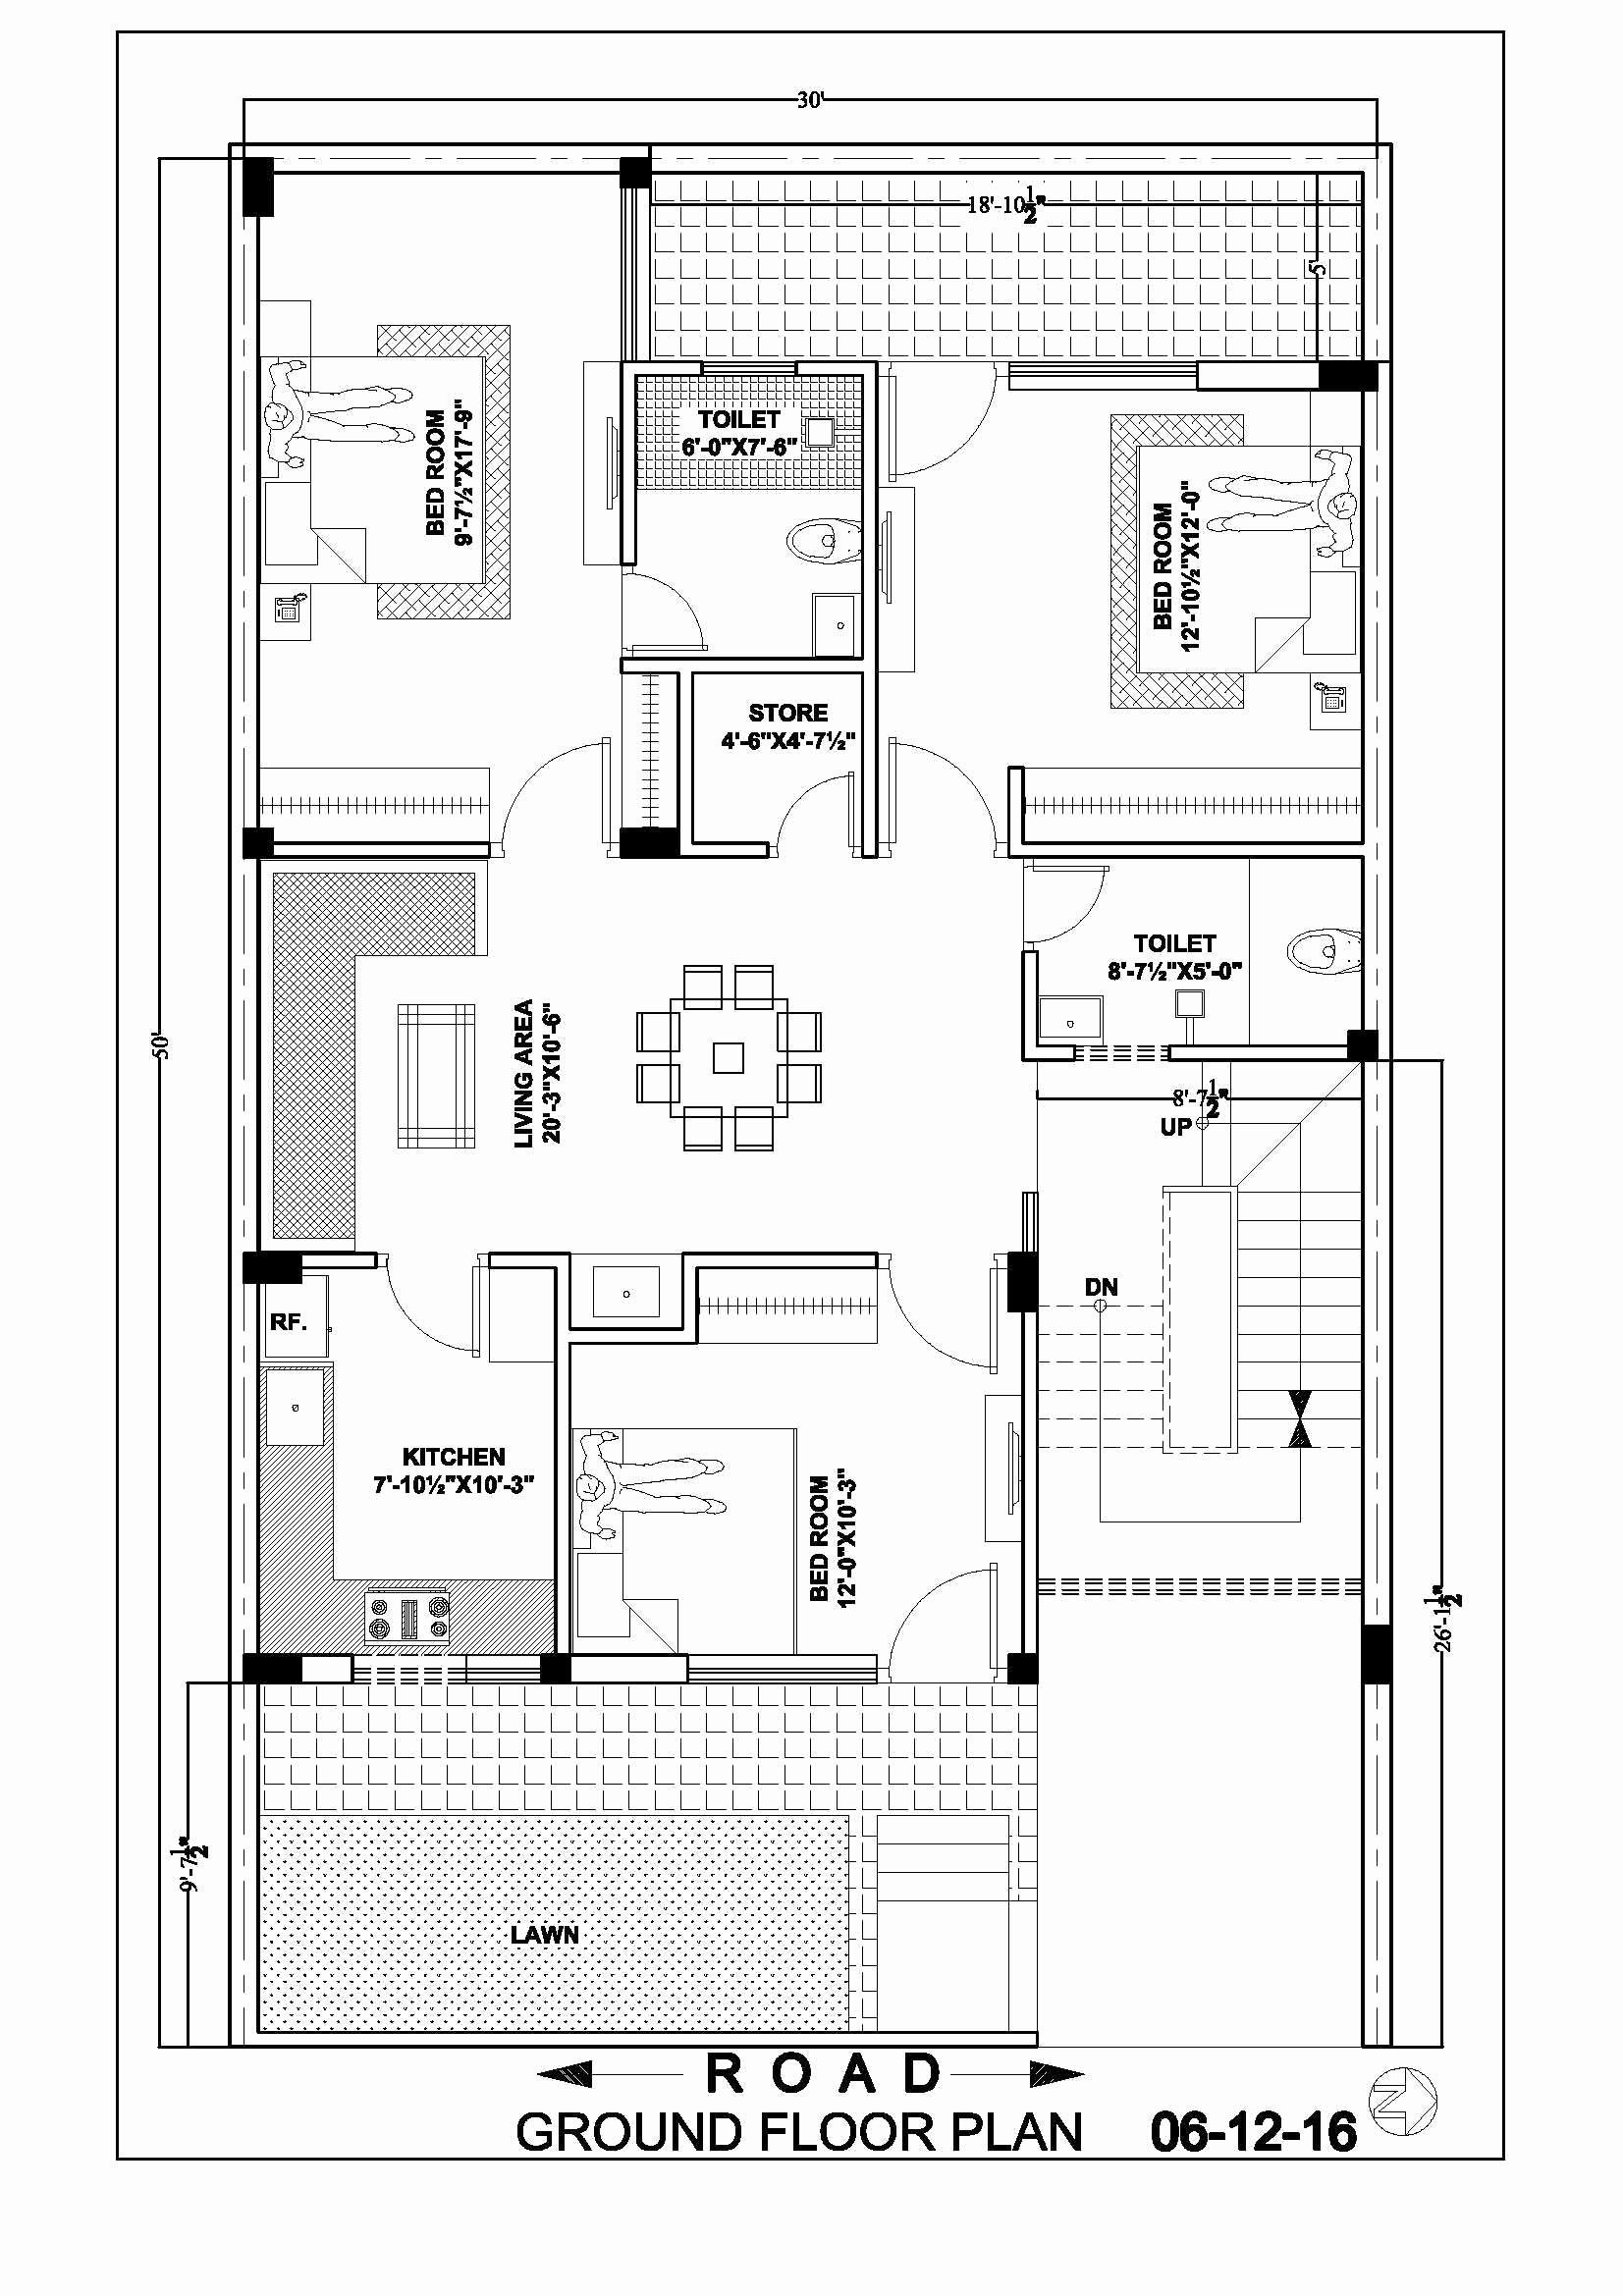 20 X 50 House Plans New 20 50 House Plan Best 20 X 40 2 Story House Plans 30x50 House Plans 40x60 House Plans House Map